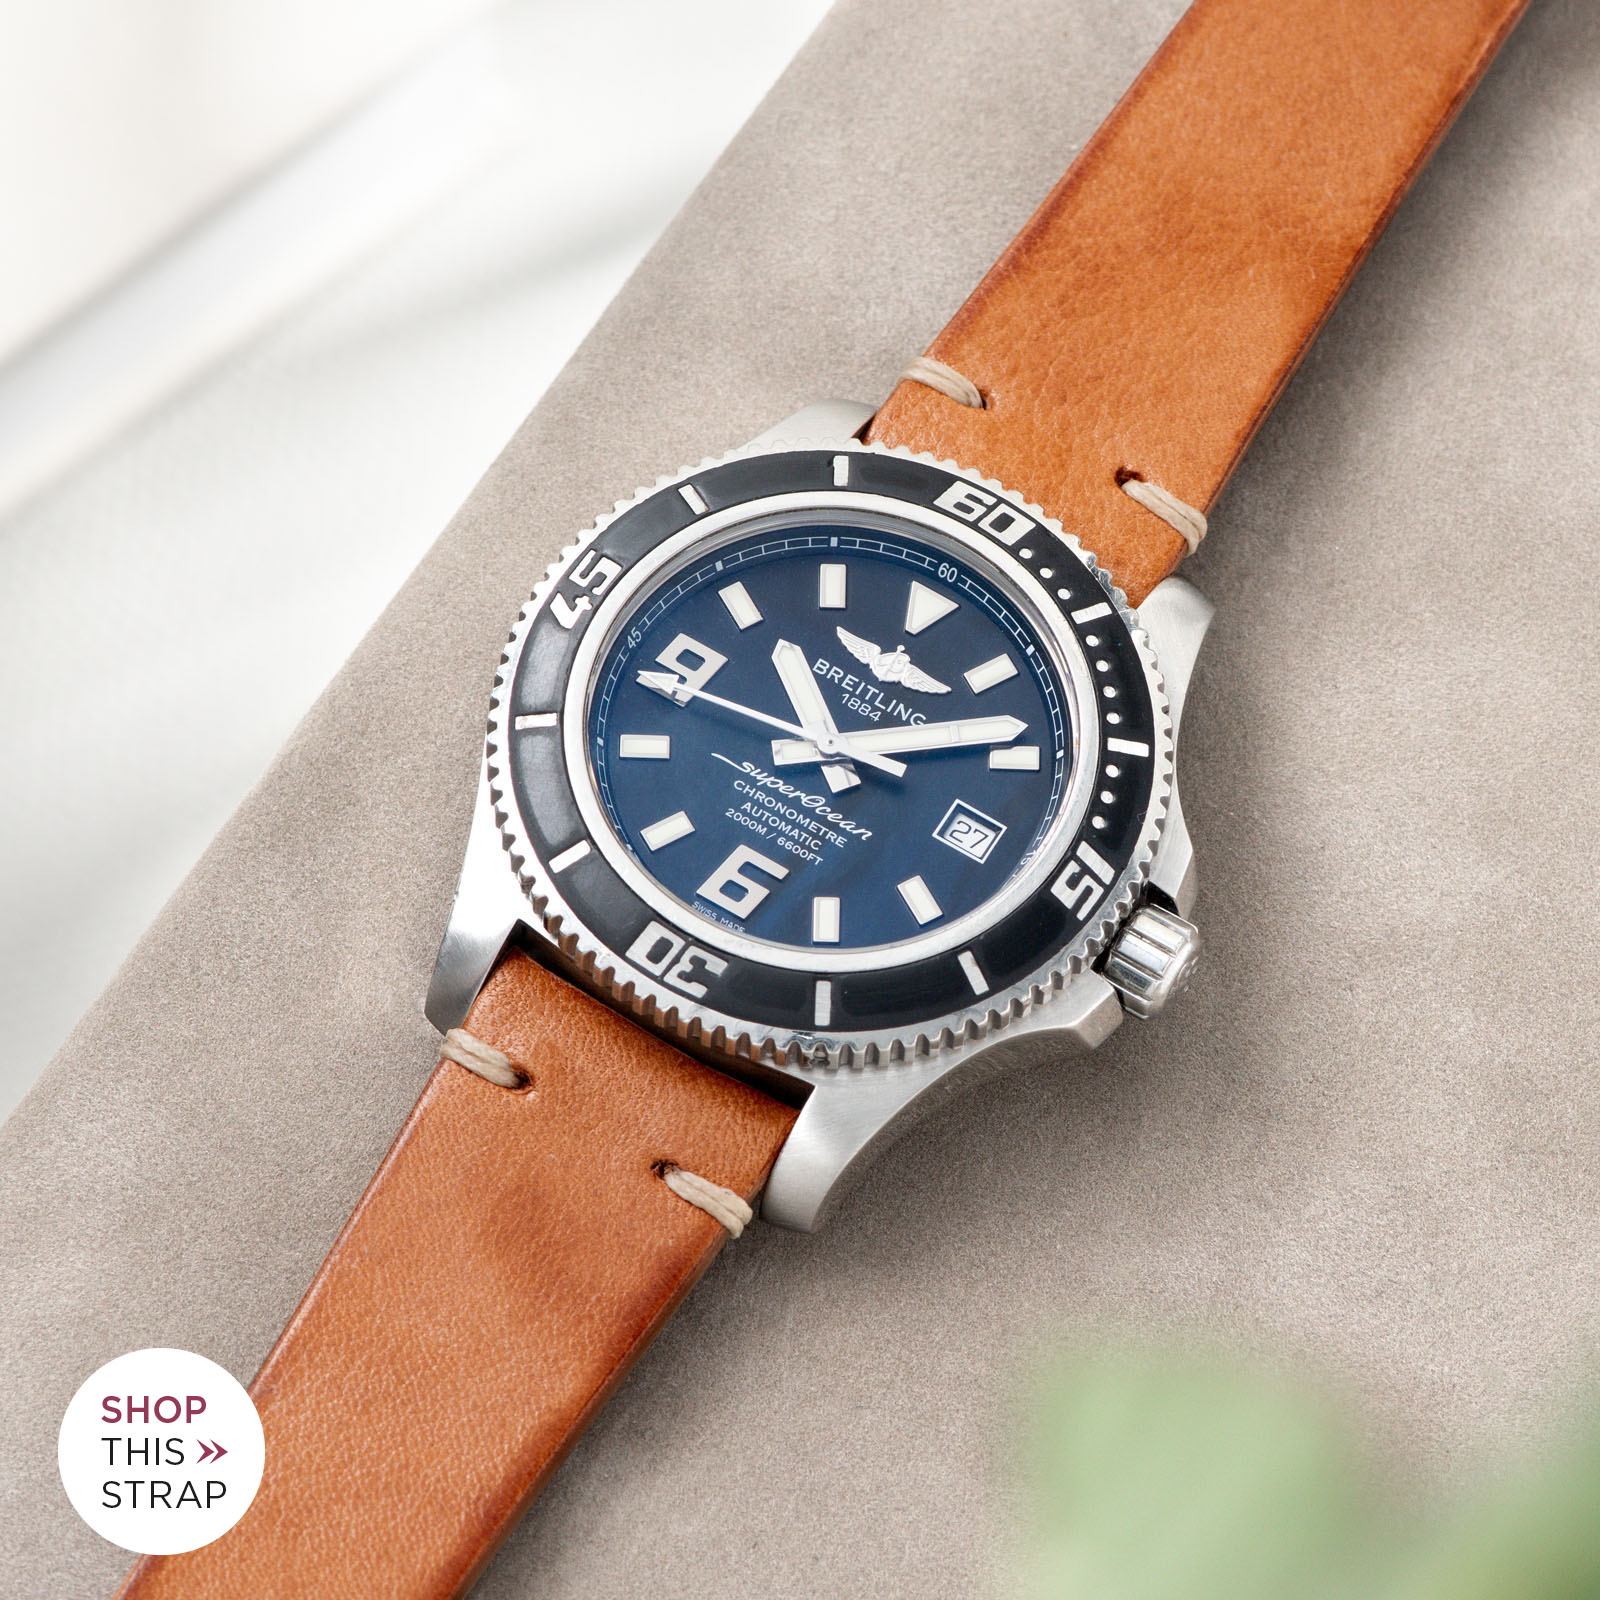 Bulang and Sons_Strap Guide_Breitling Superocean_Caramel Brown Leather Watch Strap